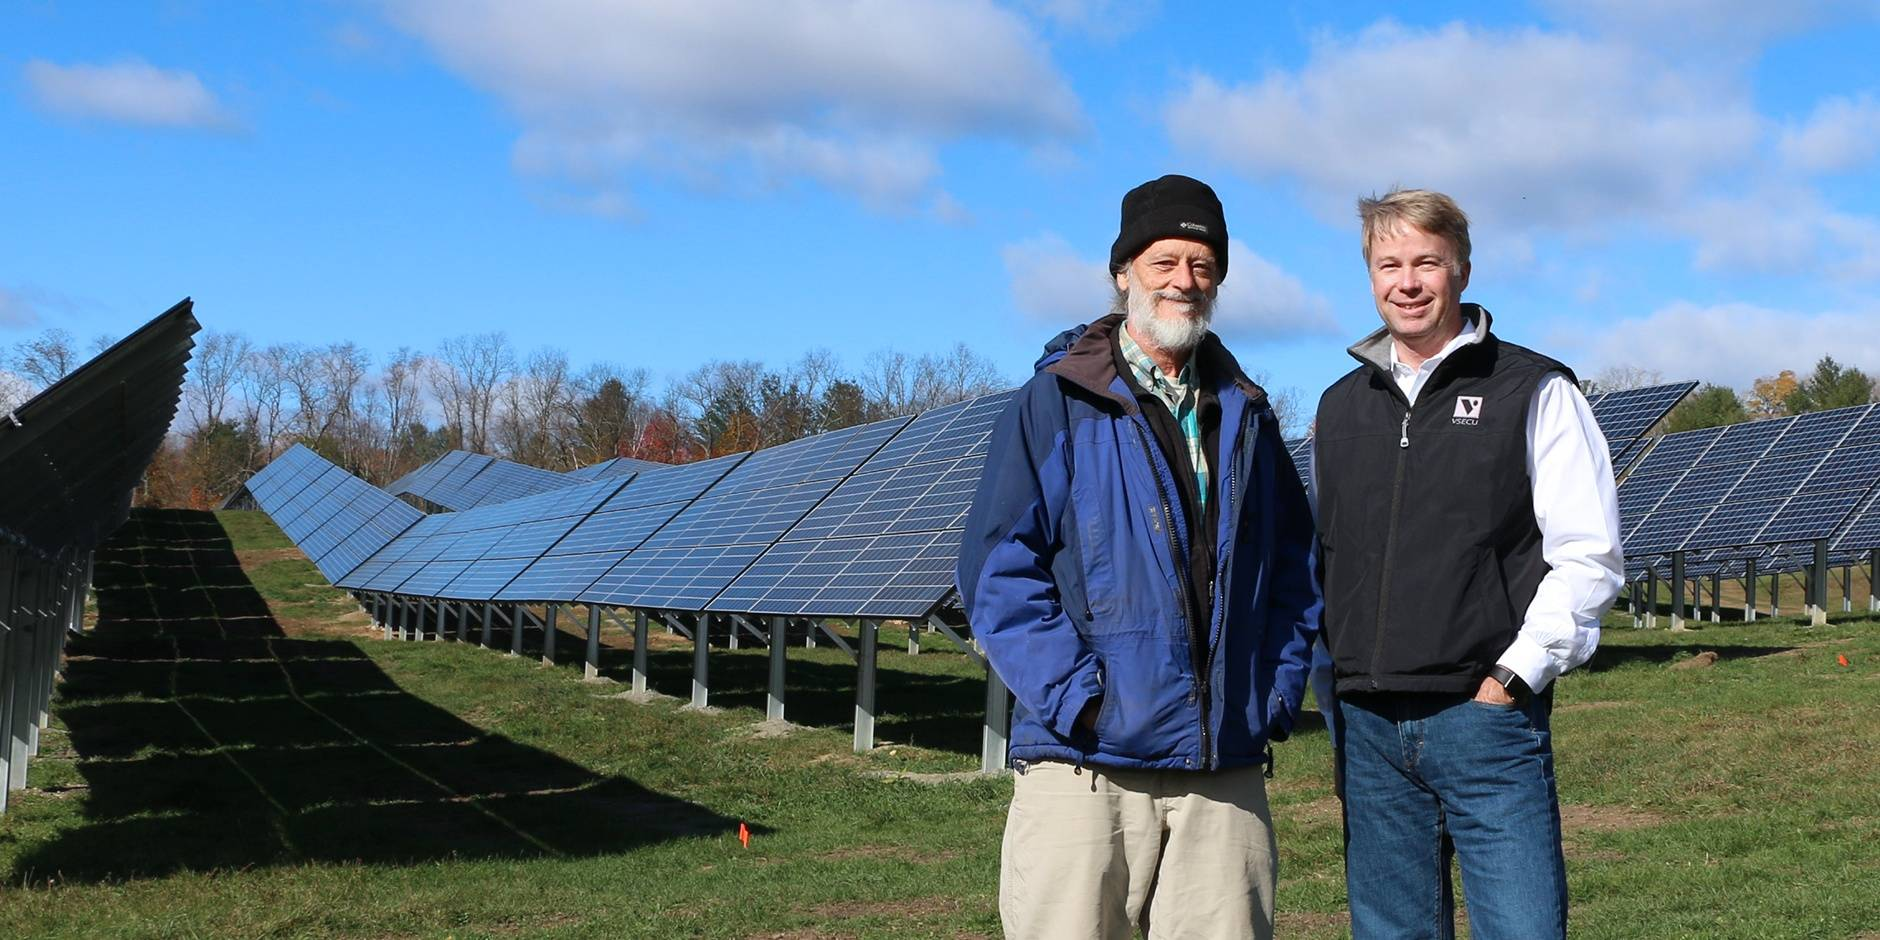 Our Innovative Solar Project, Revealed